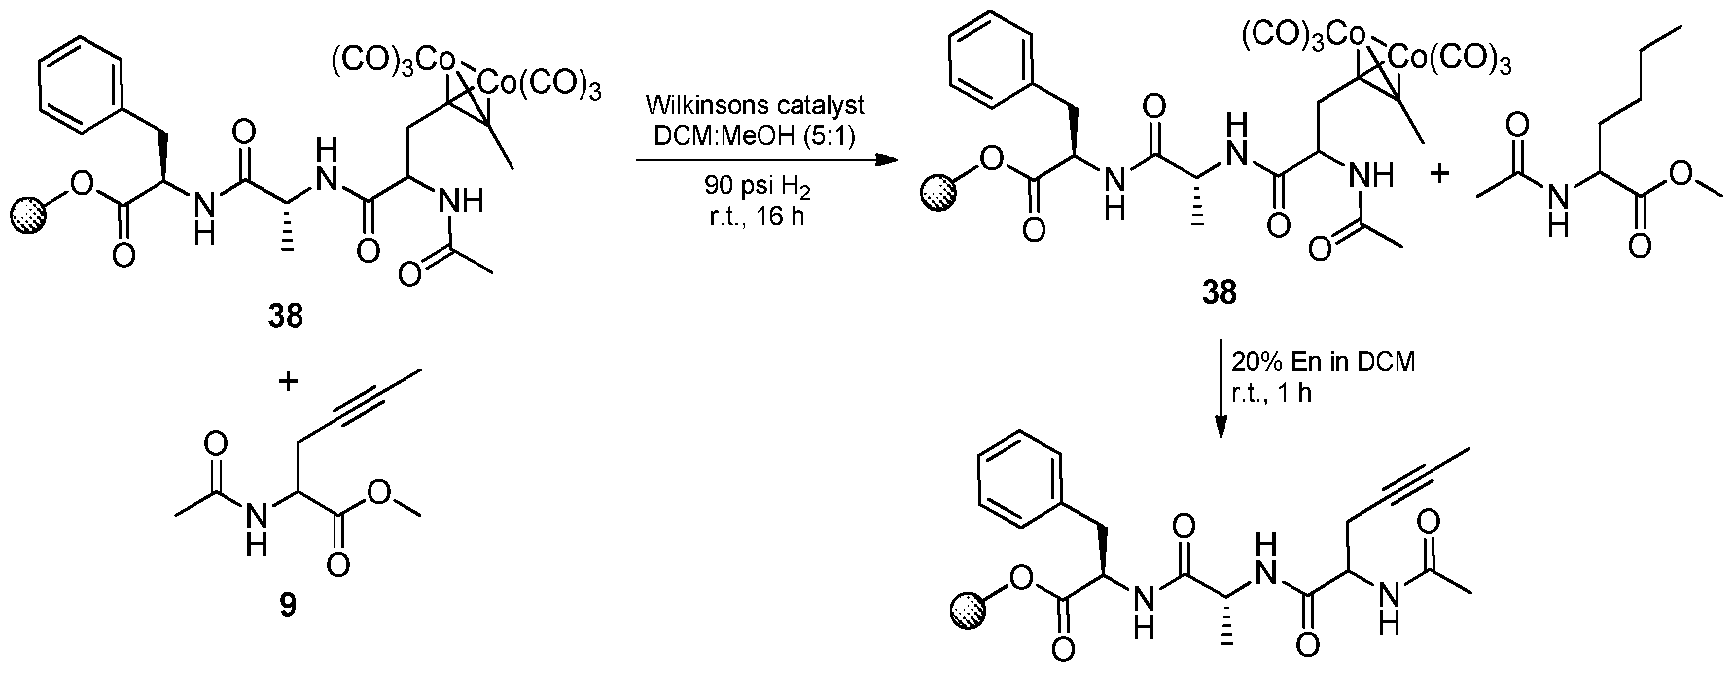 quantitative metathesis Enyloxy)pyridine substituents by alkene metathesis to form a 69-membered   fact, pure 1 was obtained quantitatively and could be reused in subsequent.